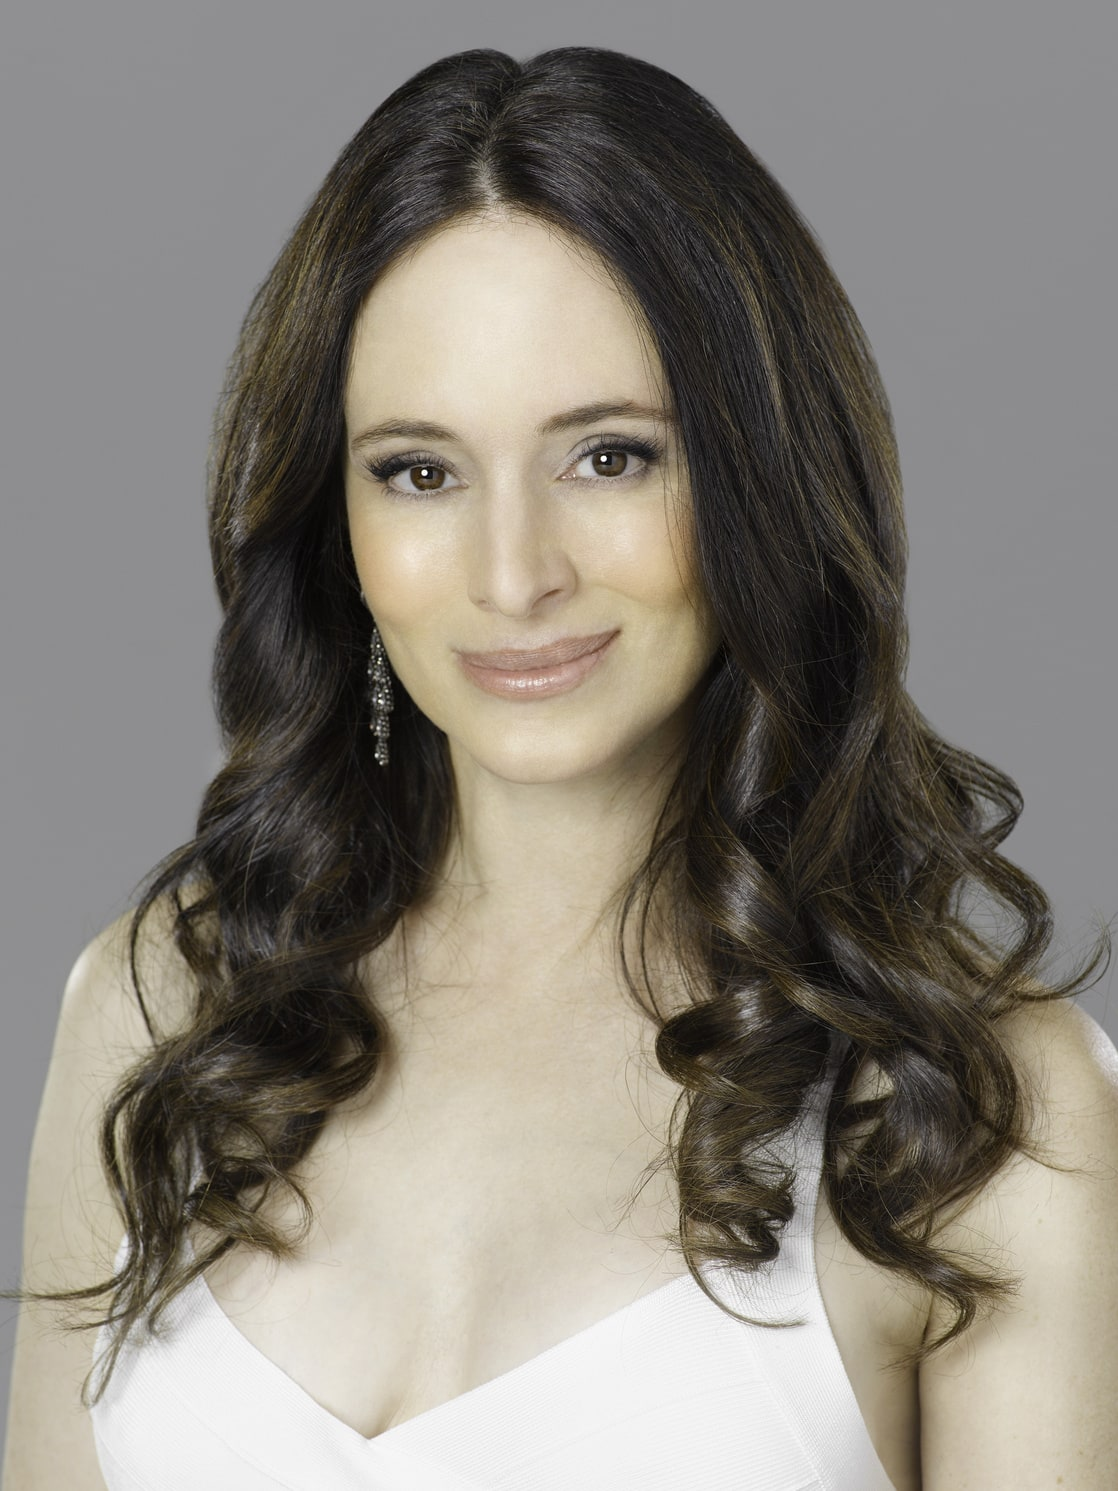 image Madeleine stowe nude stakeout